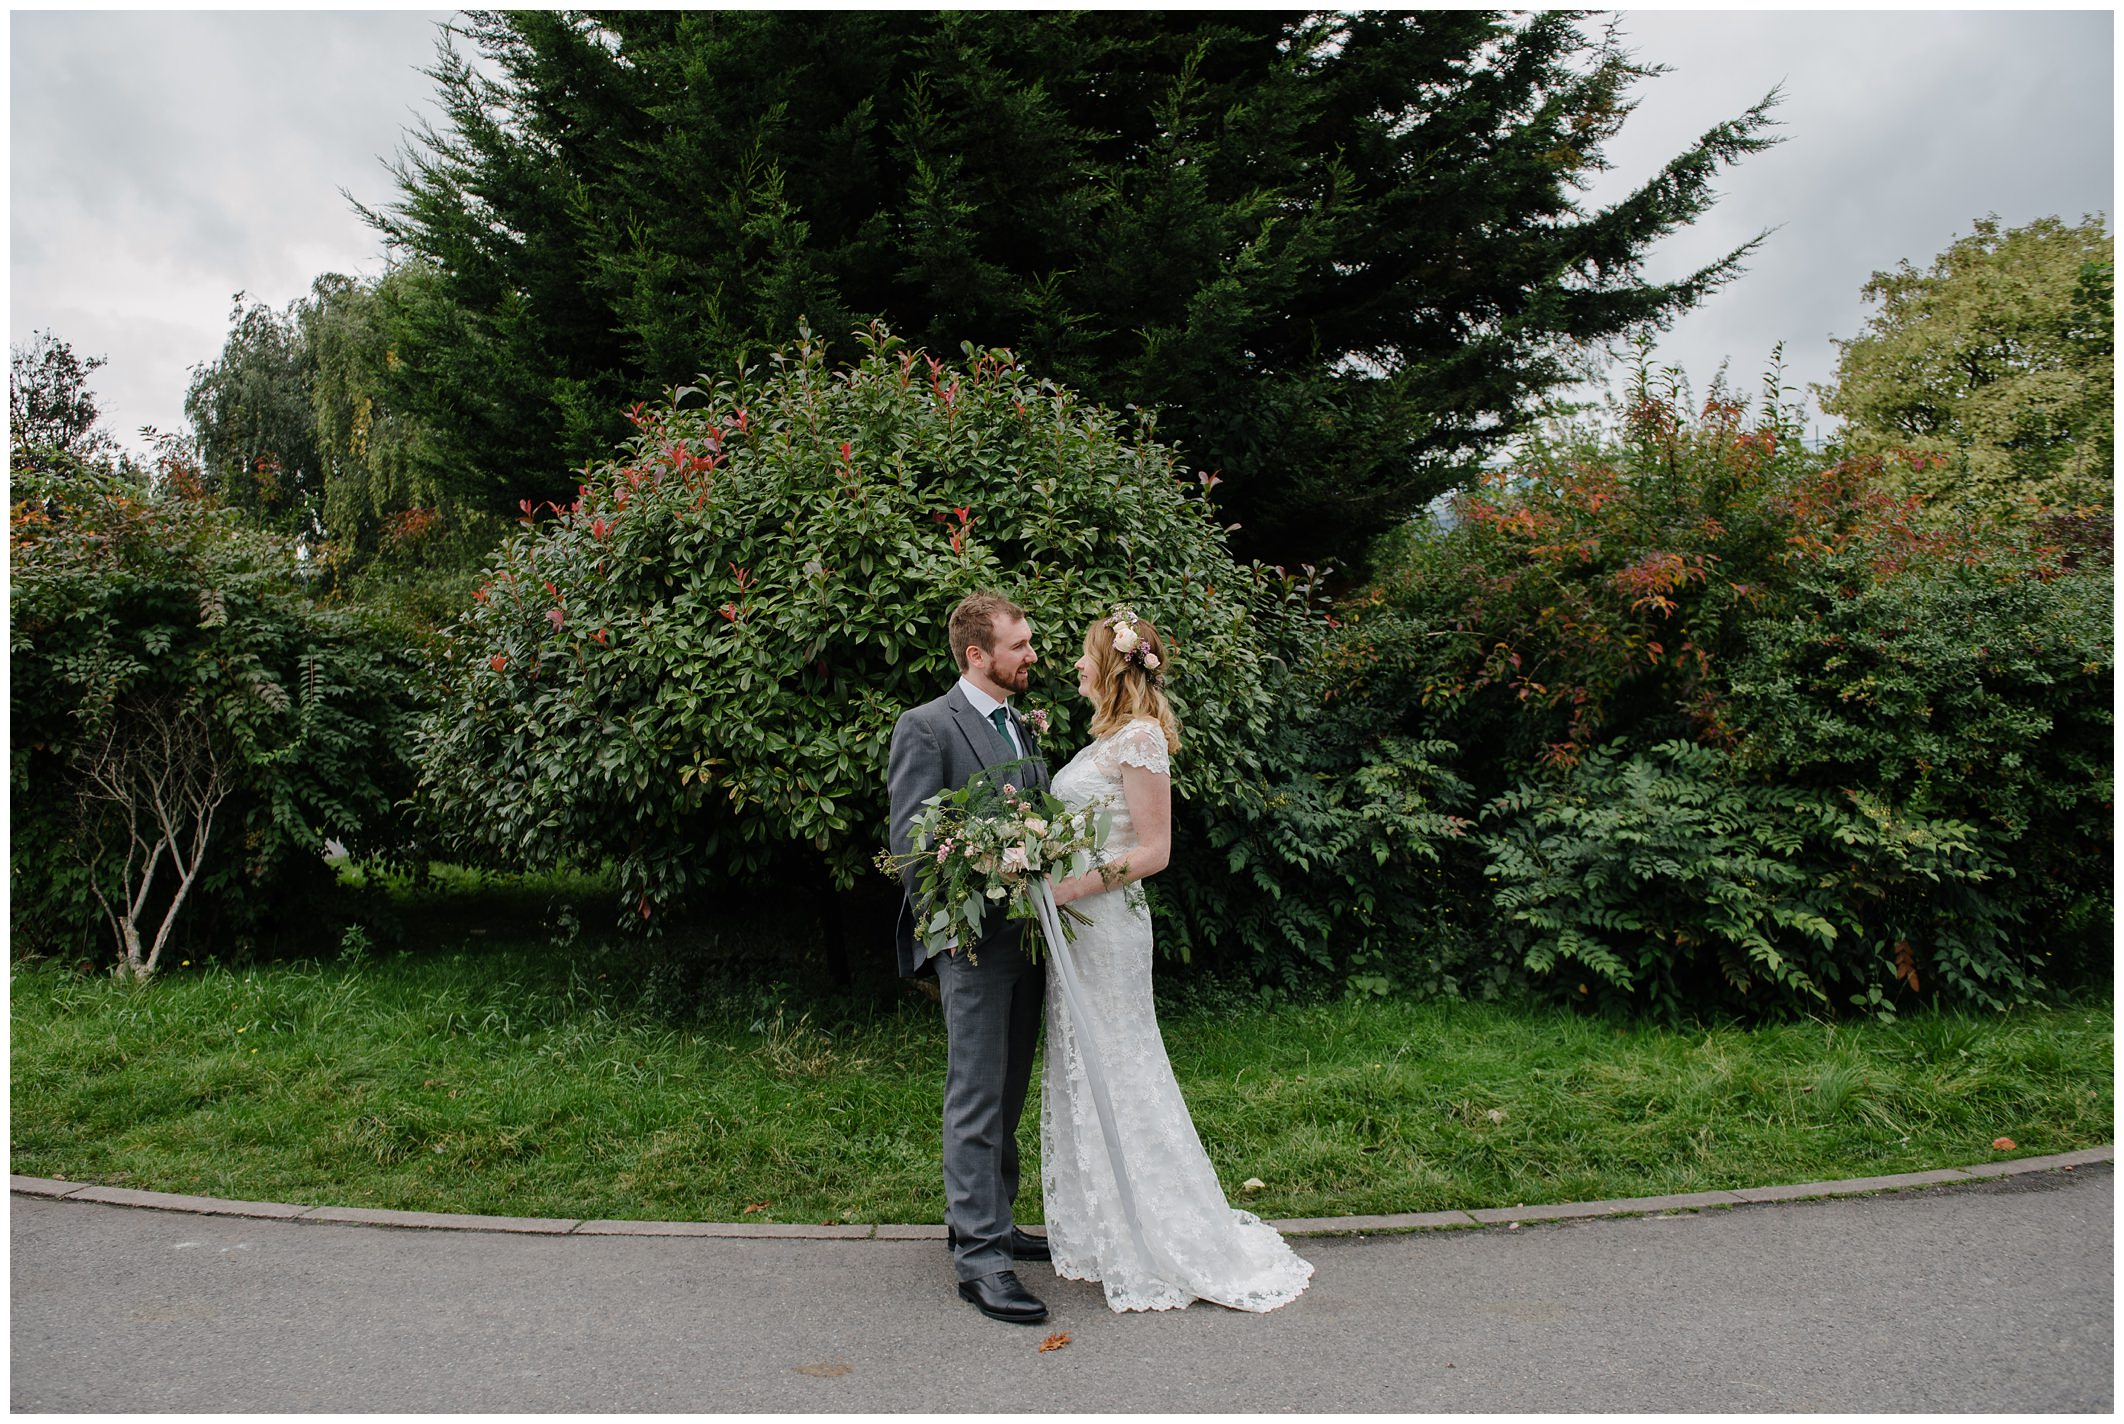 asylum_chapel_peckham_rosendale_wedding_jude_browne_photography_0100.jpg